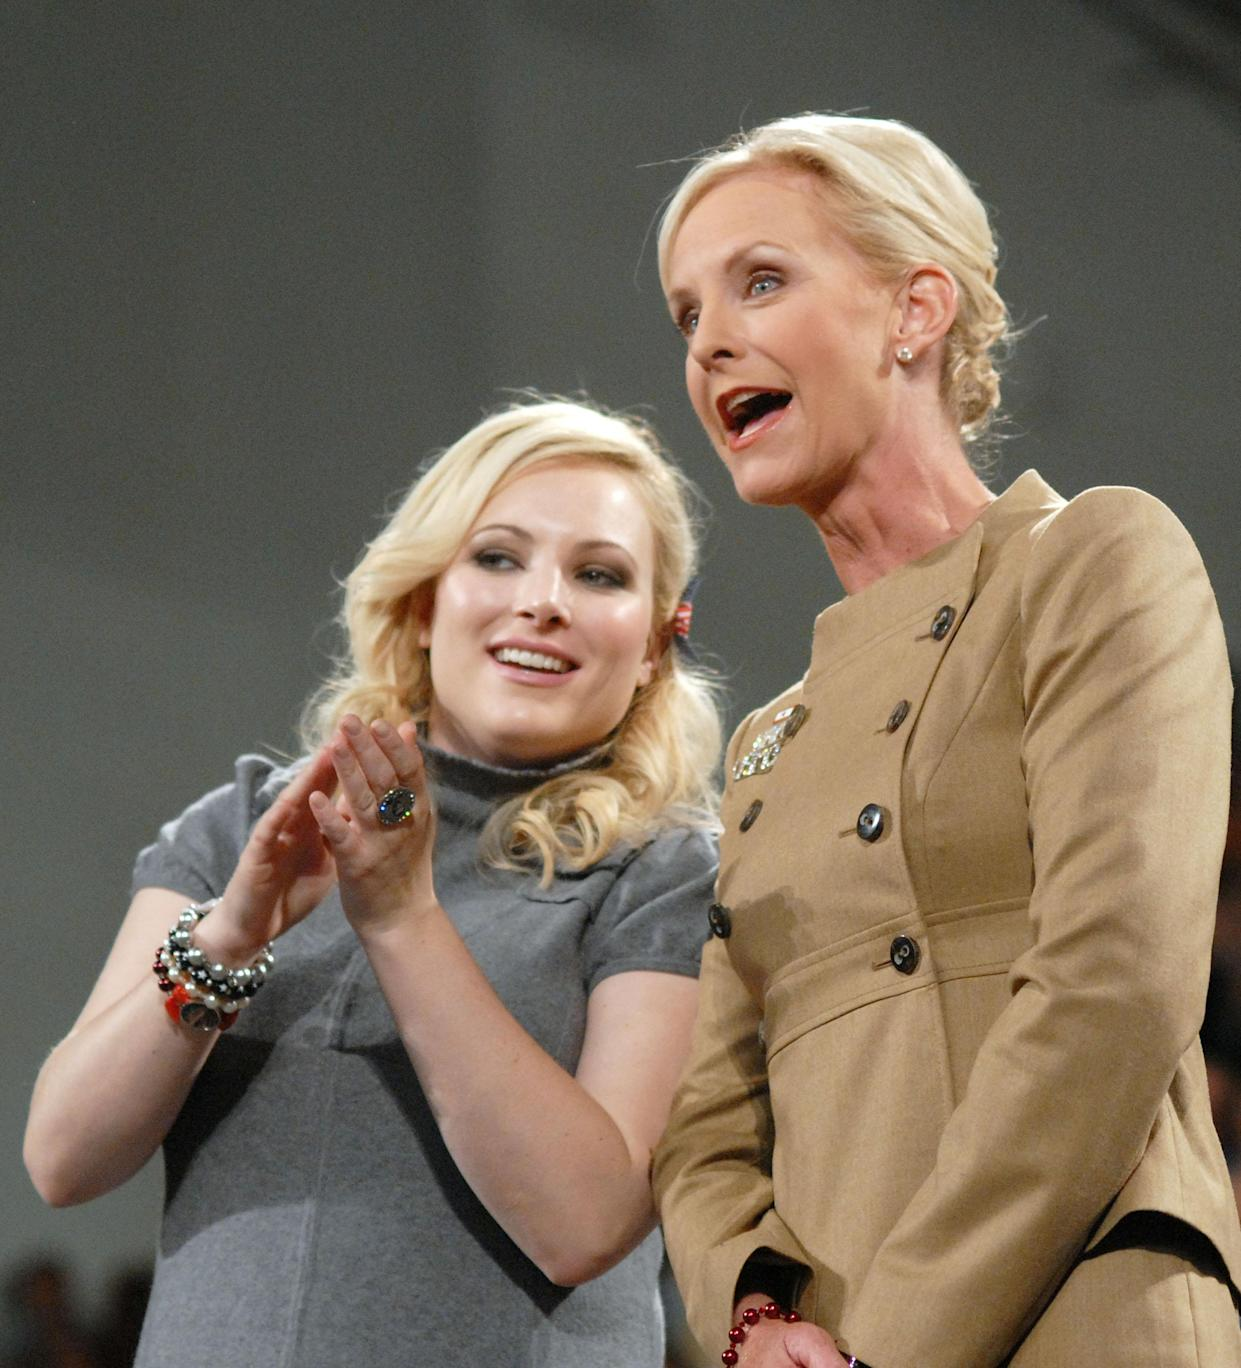 Cindy McCain (R), said she is proud of daughter Meghan McCain (L) for co-hosting